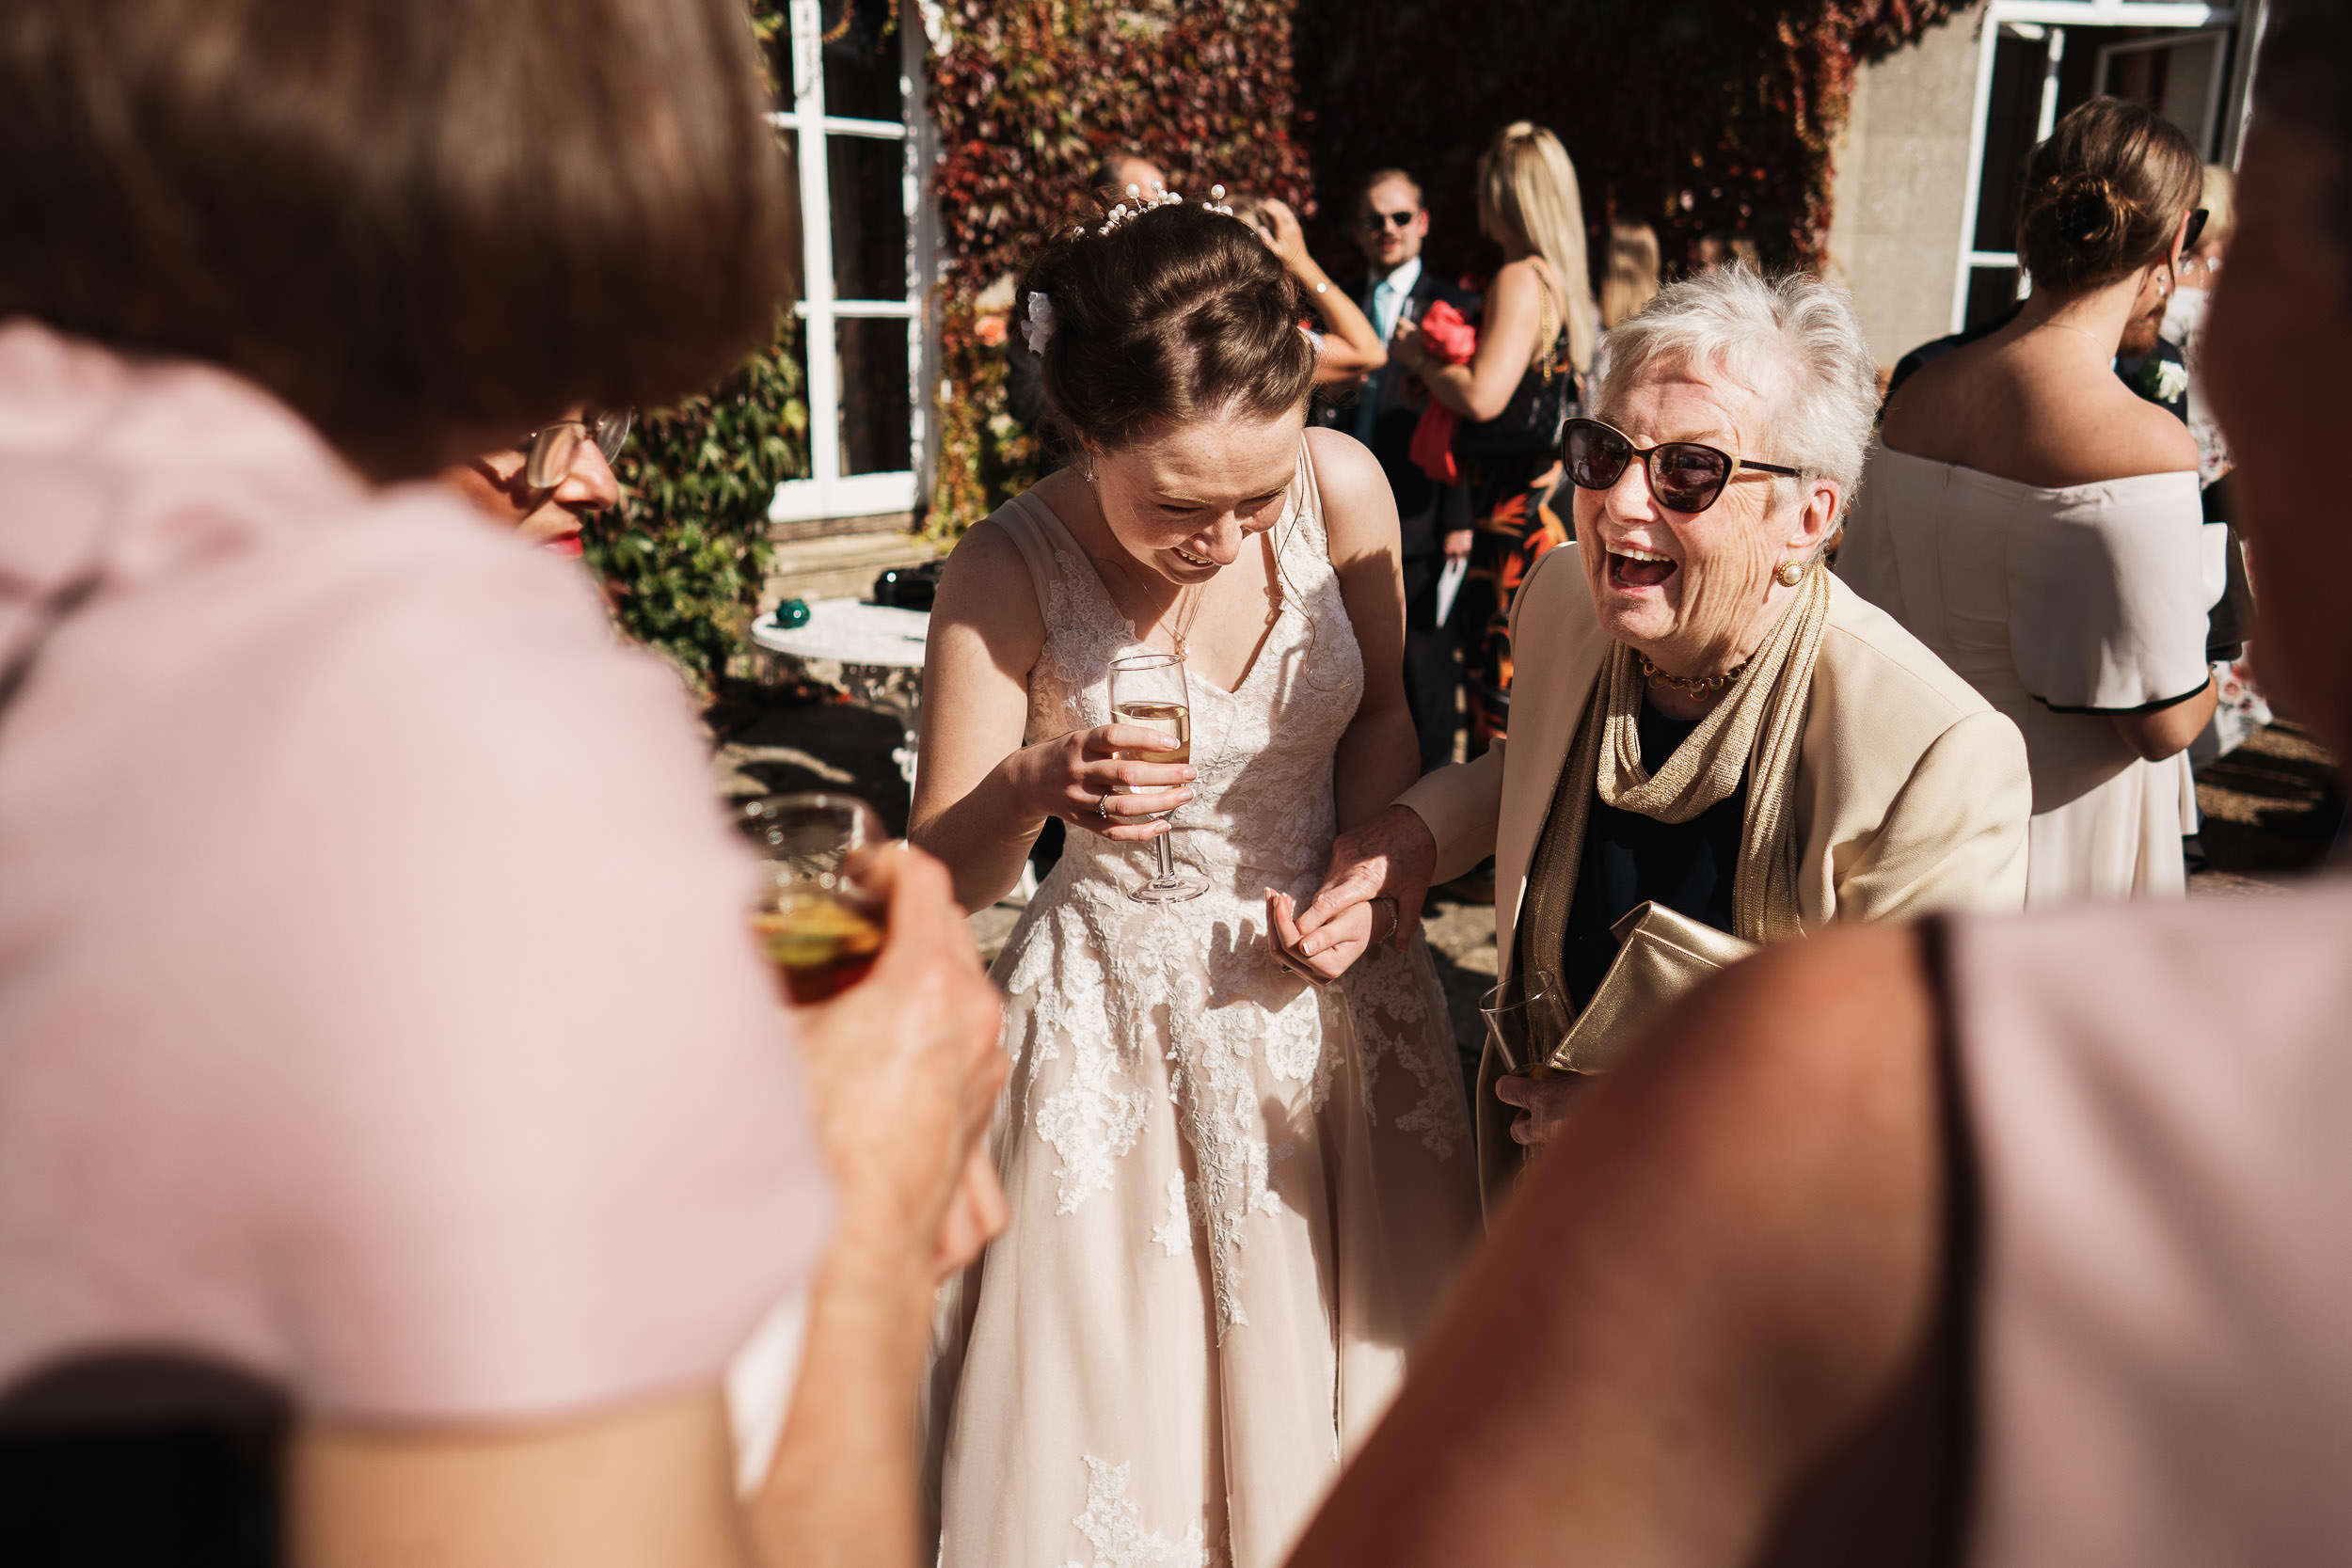 Pennard House Wedding - Champagne Reception